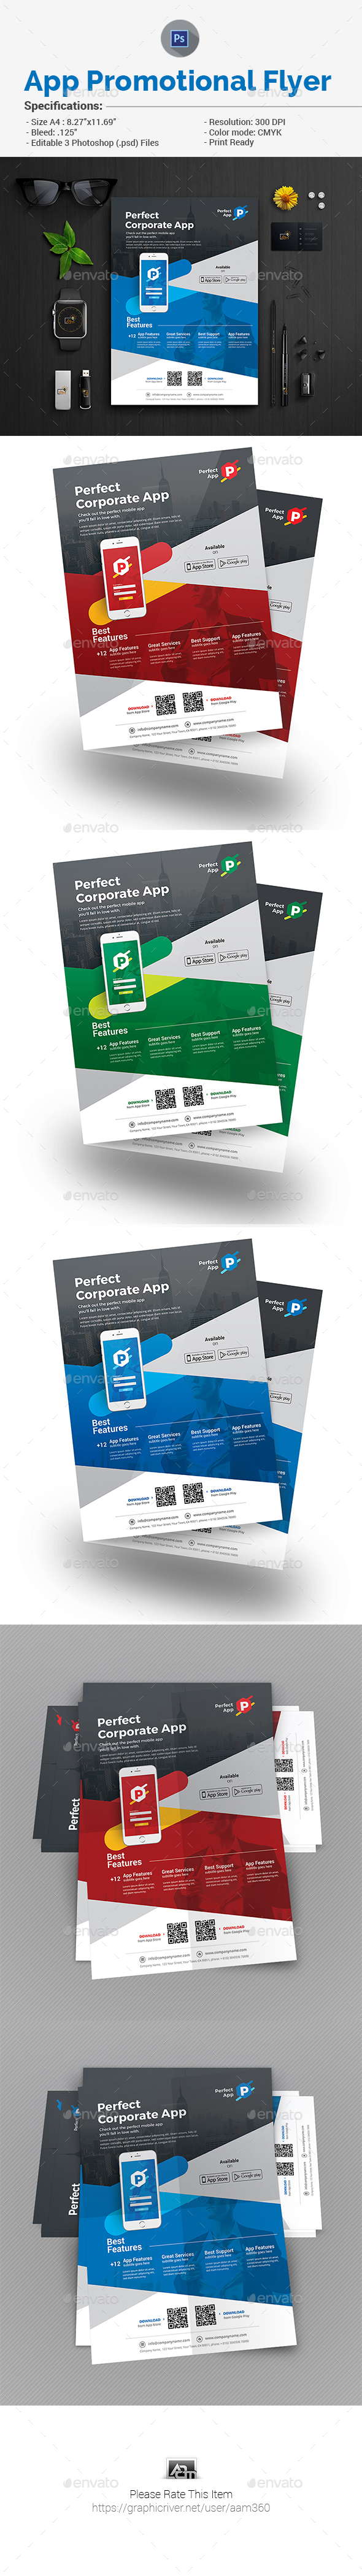 Mobile App Promotion Flyer Templates - Corporate Flyers